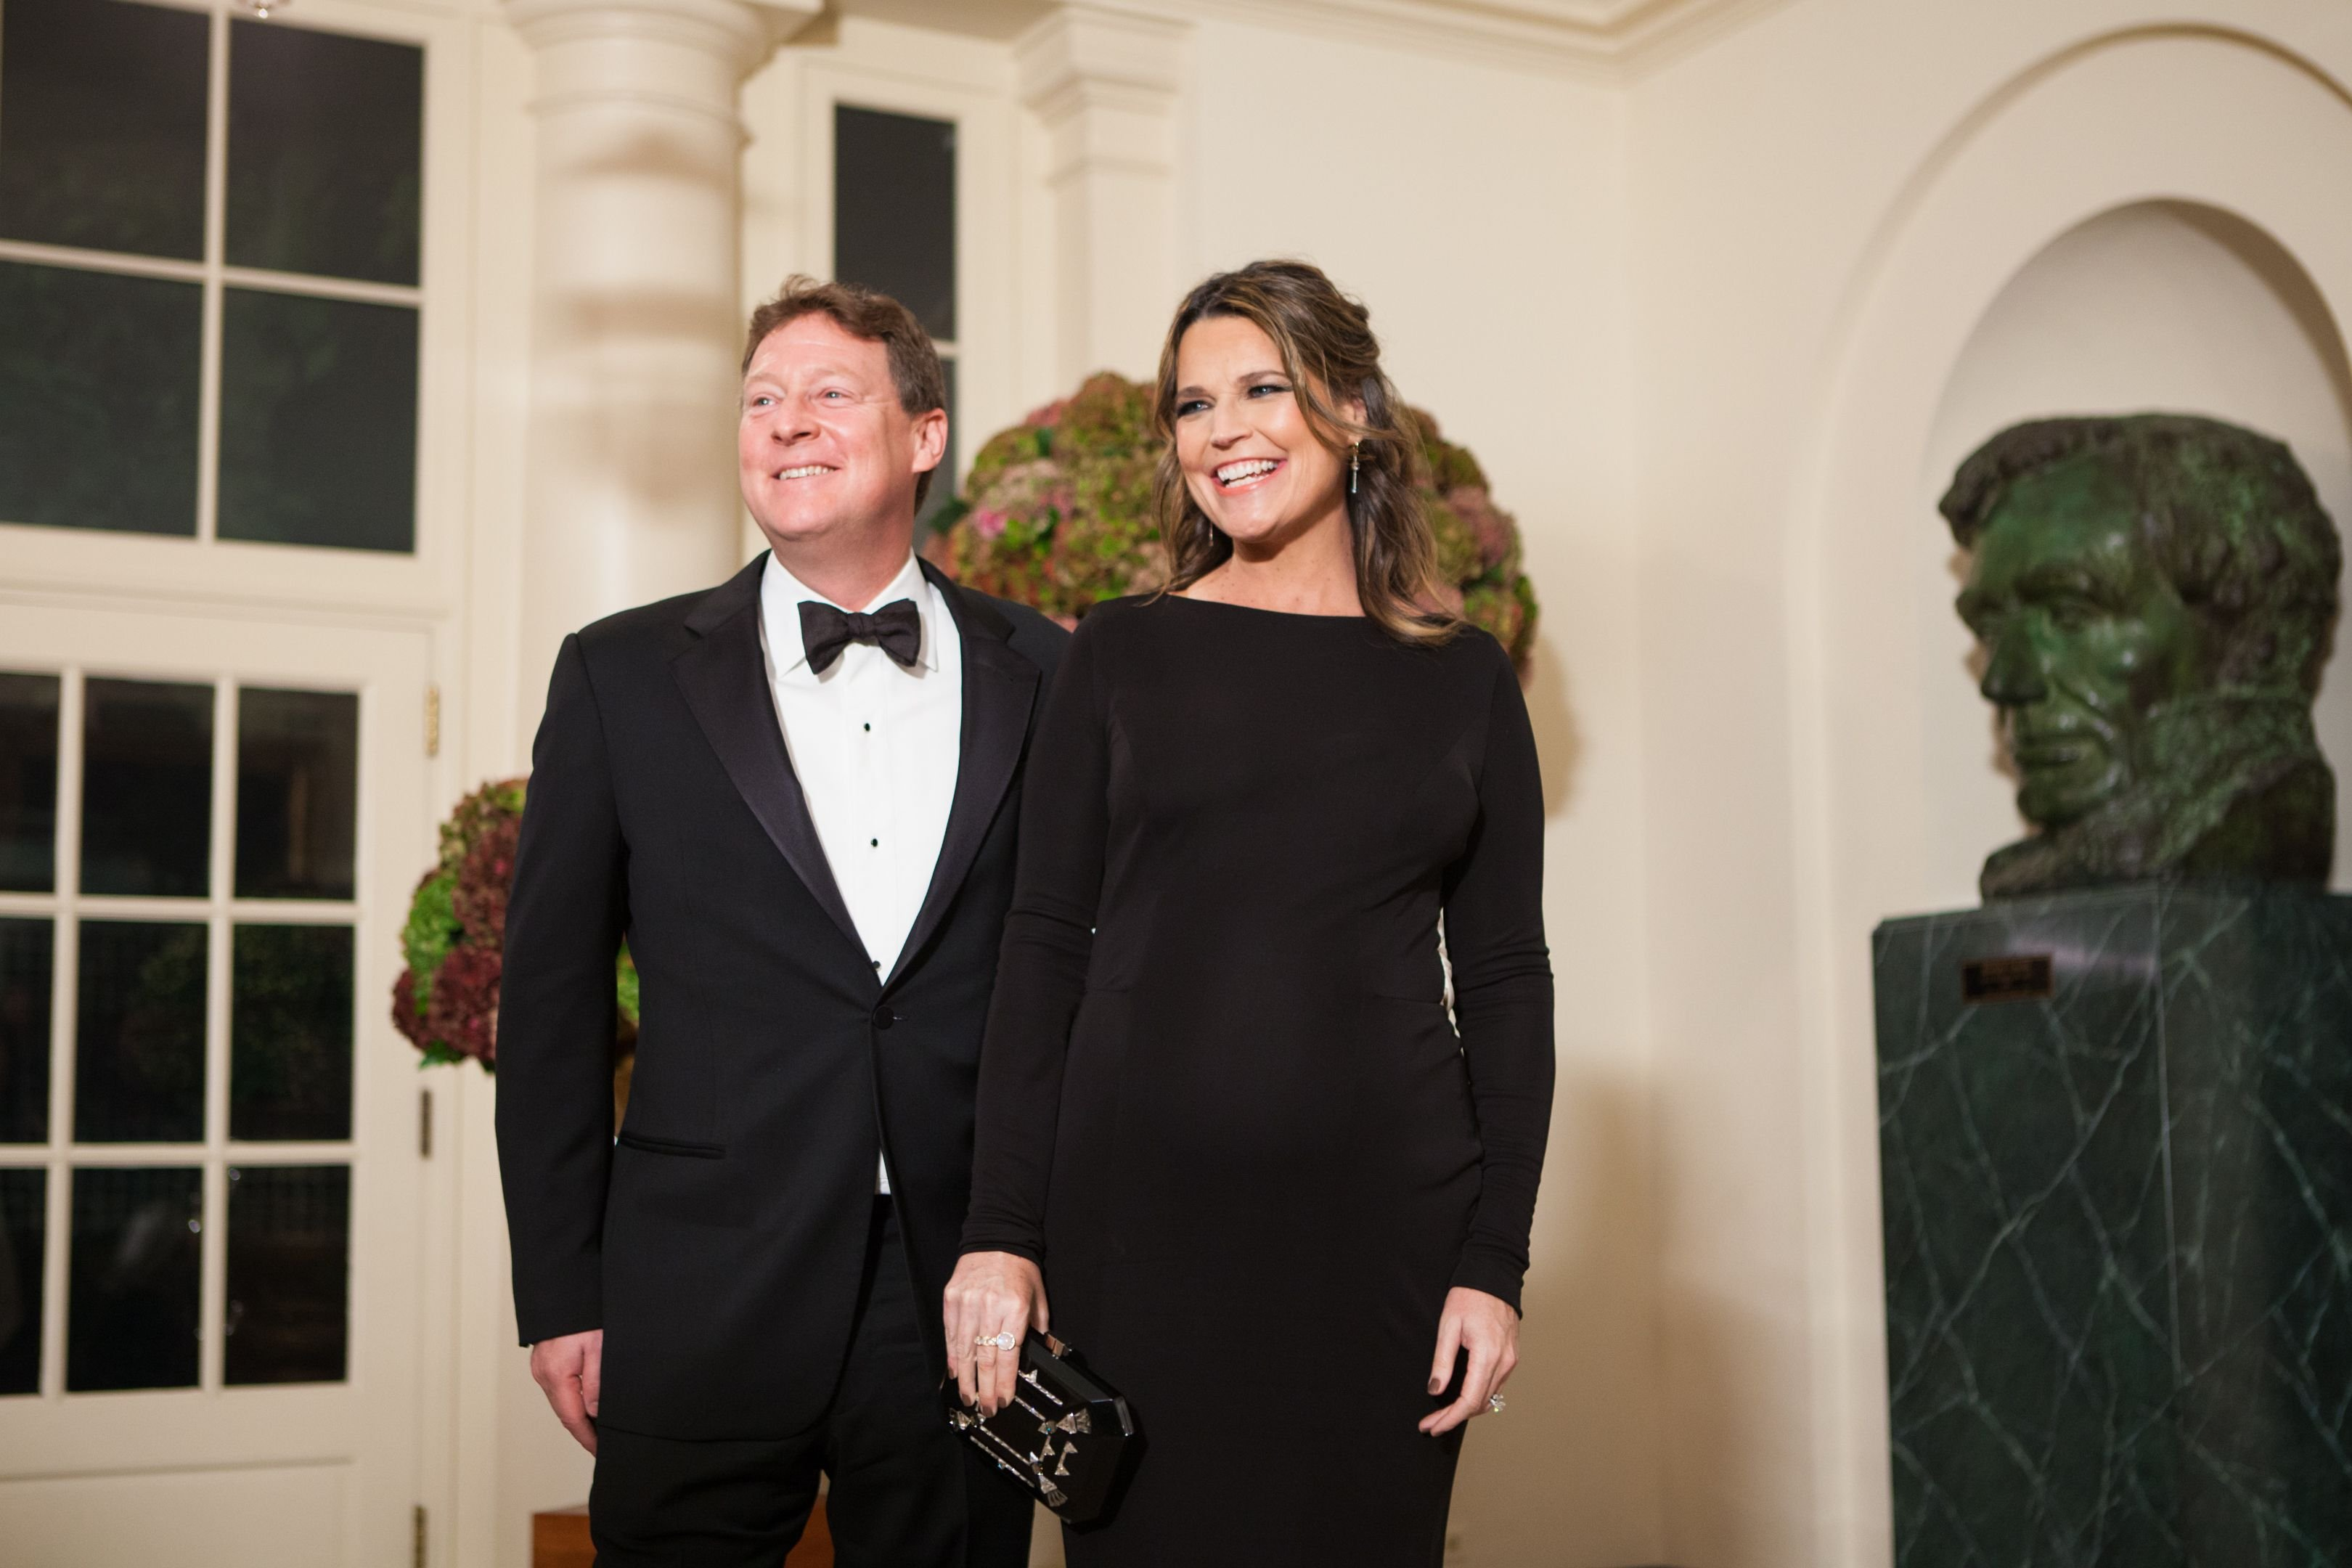 Michael Feldman and Savannah Guthrie at the White House in Washington, DC, on 18 October 2016 | Photo: Cheriss May/NurPhoto/Getty Images